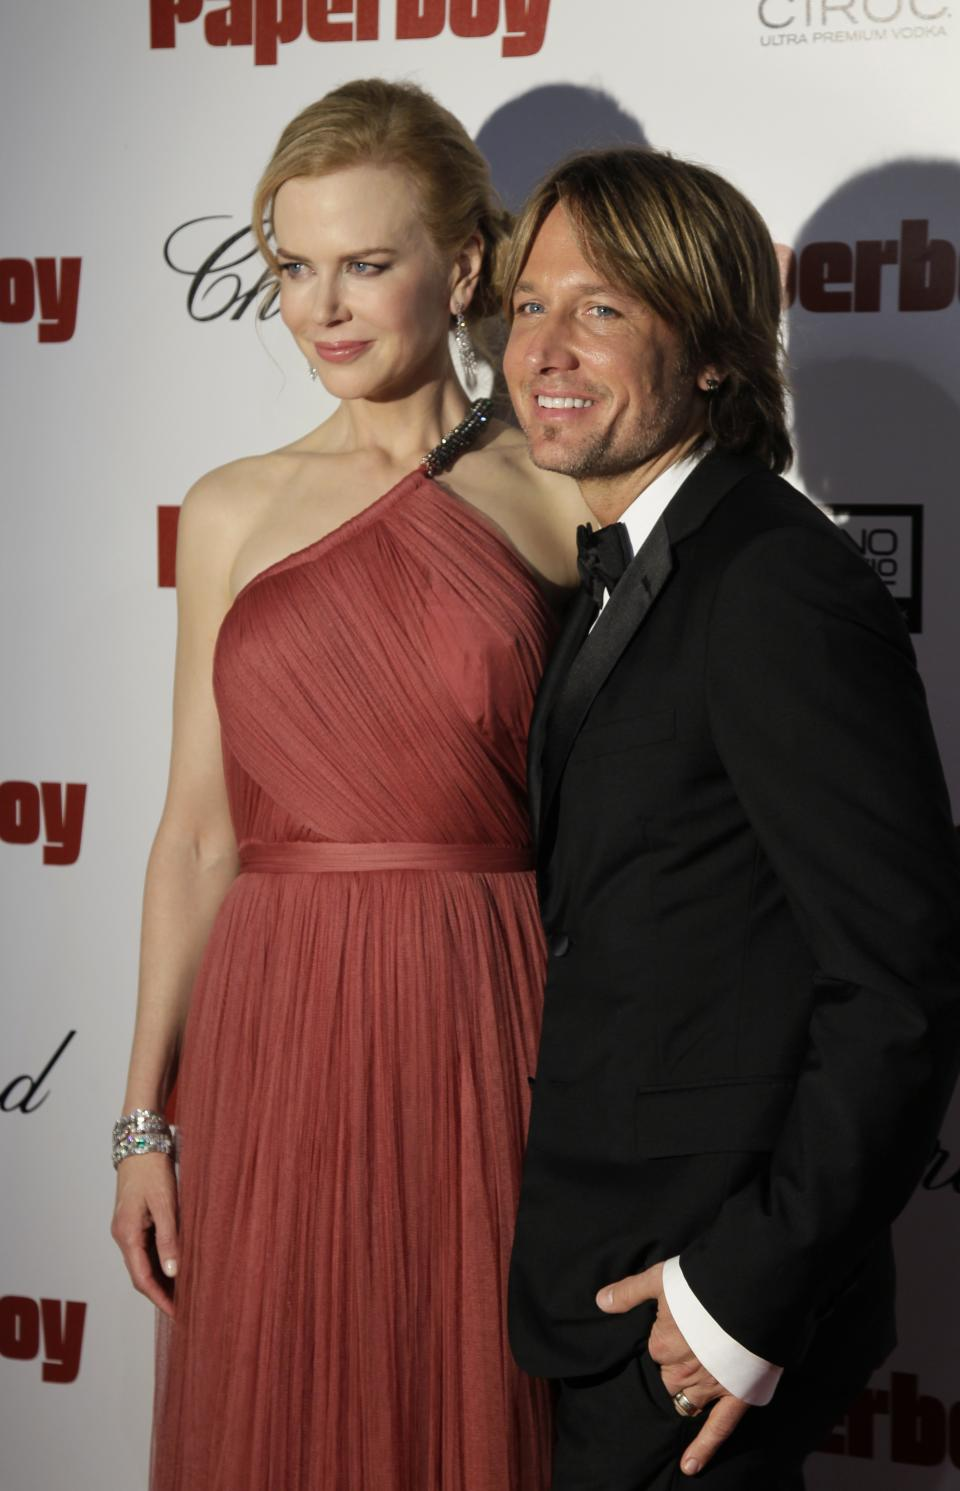 Actress Nicole Kidman, left, and musician Keith Urban arrive at the party for the paperboy at the 65th international film festival, in Cannes, southern France, Thursday, May 24, 2012. (AP Photo/Francois Mori)